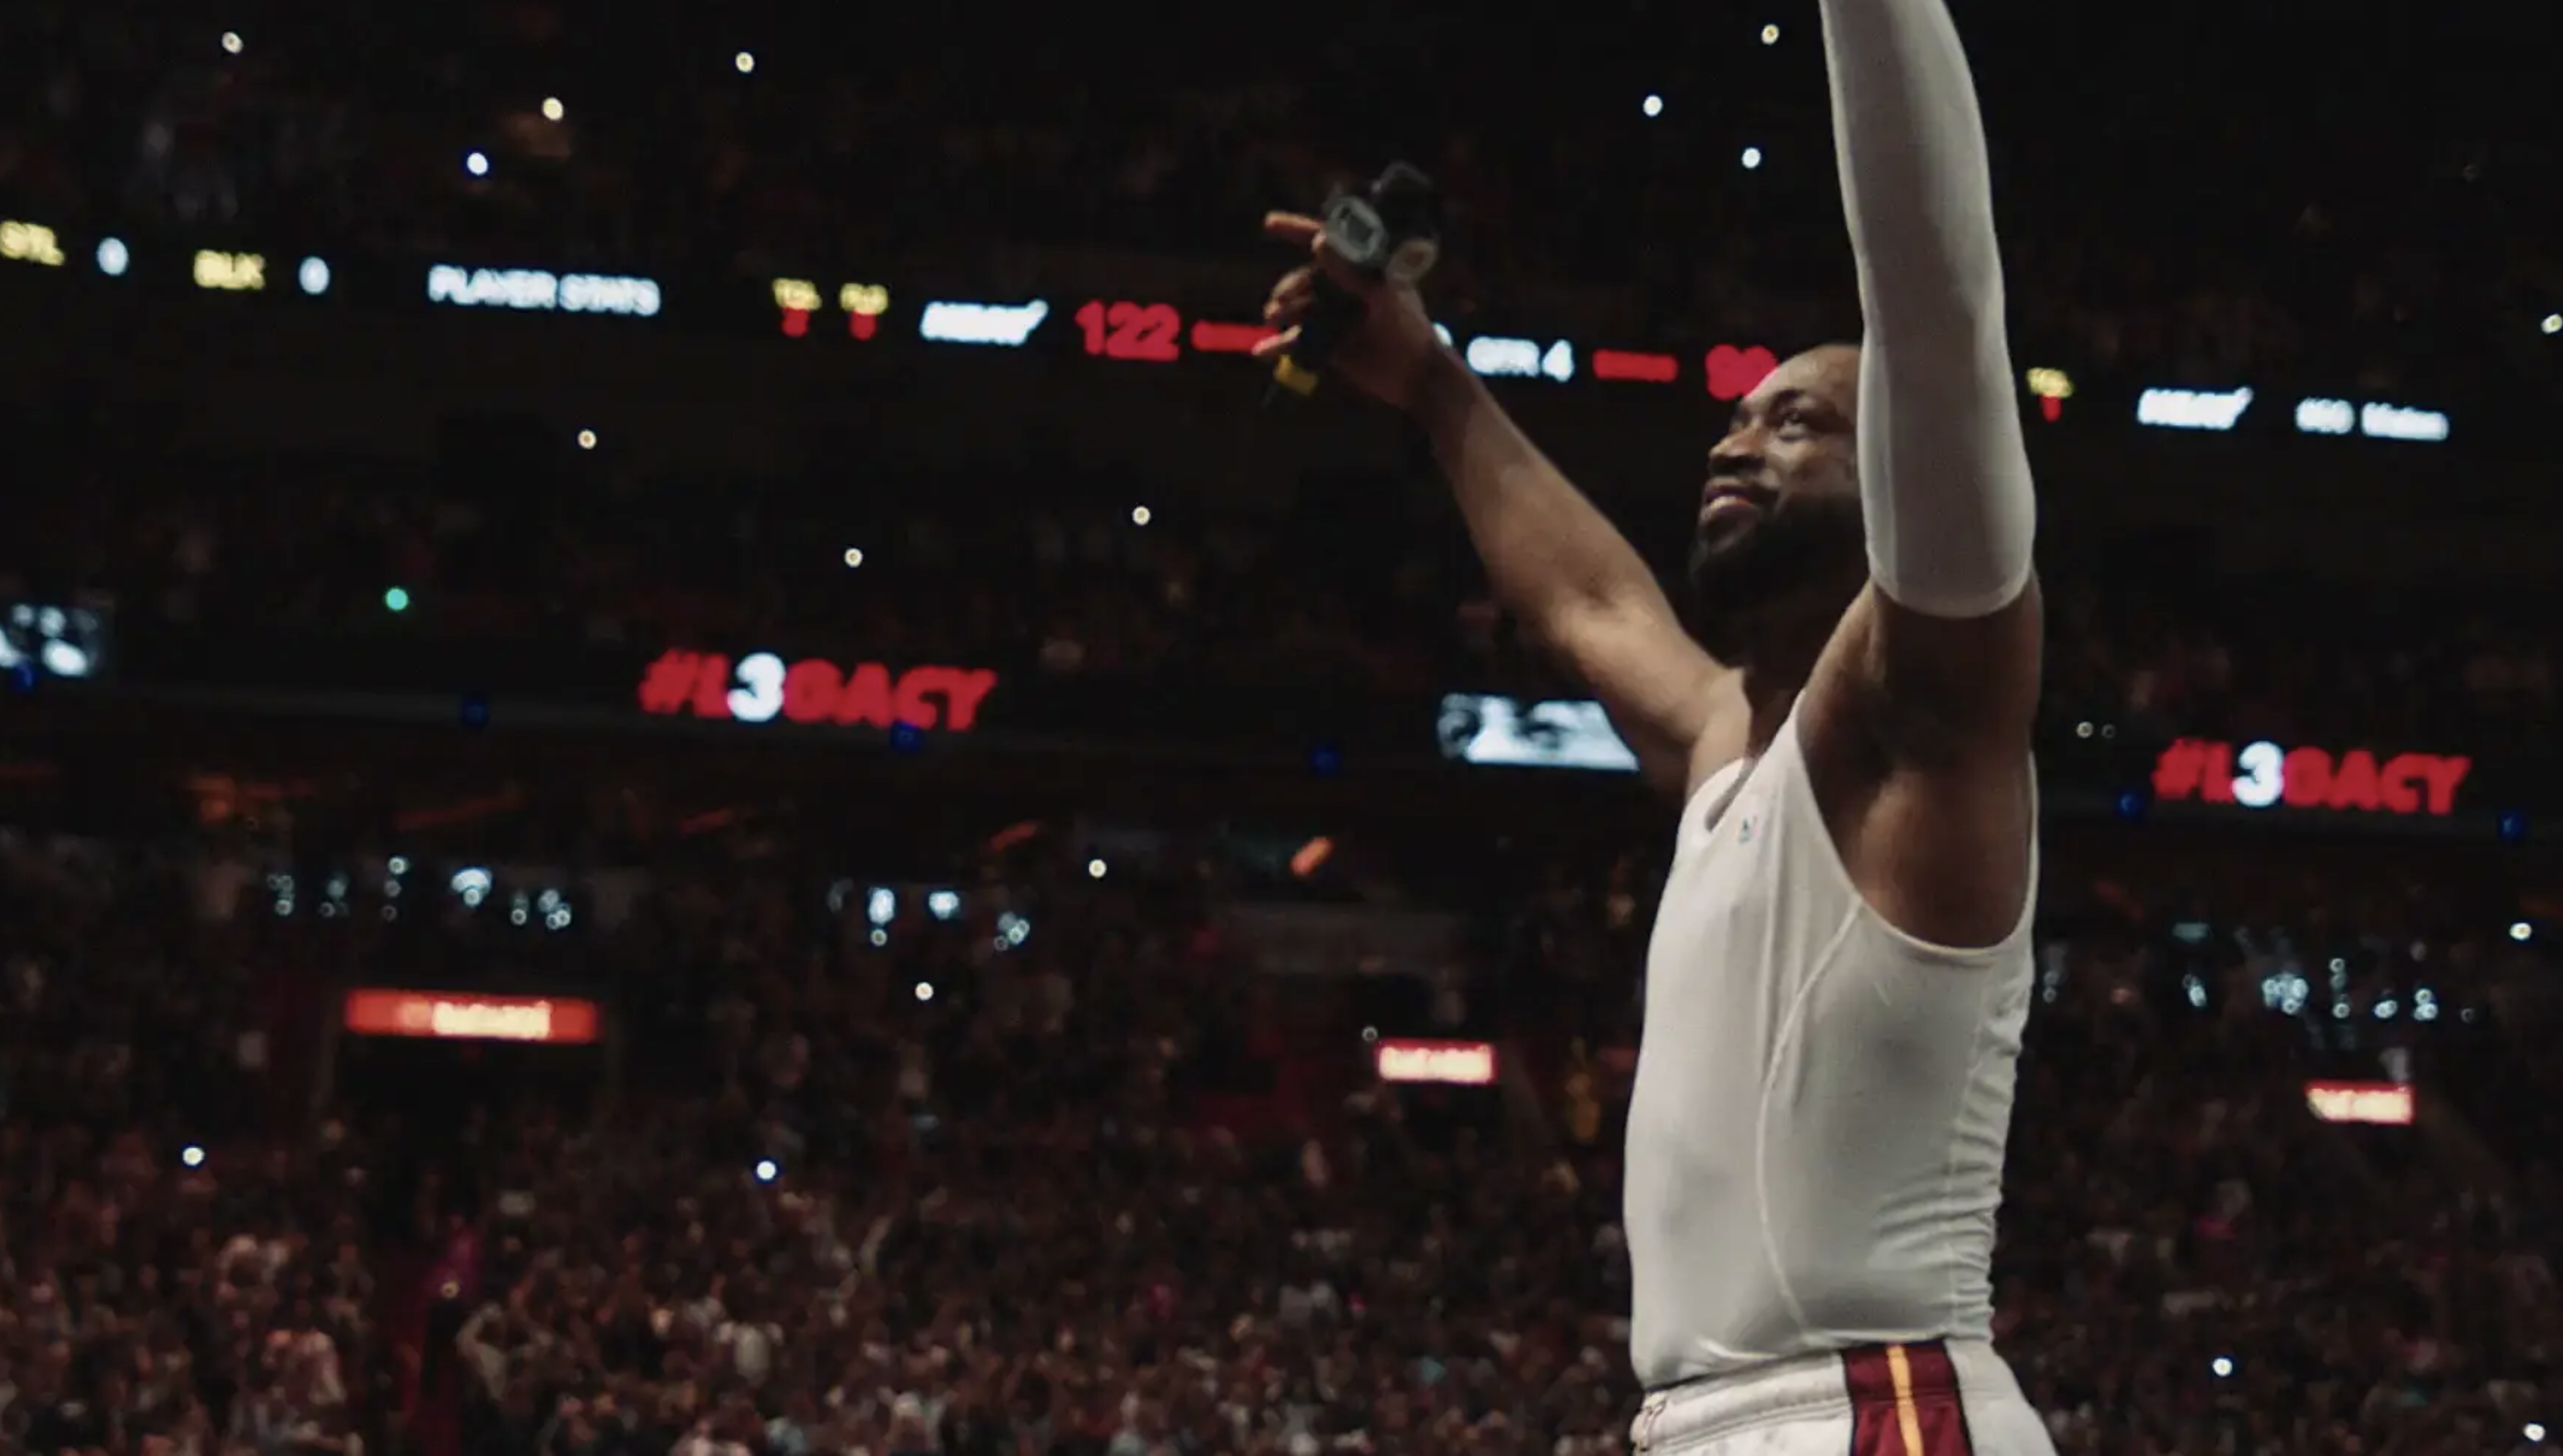 New Documentaries 2020 Imagine Entertainment » Dwyane Wade Posts a First Look at a New